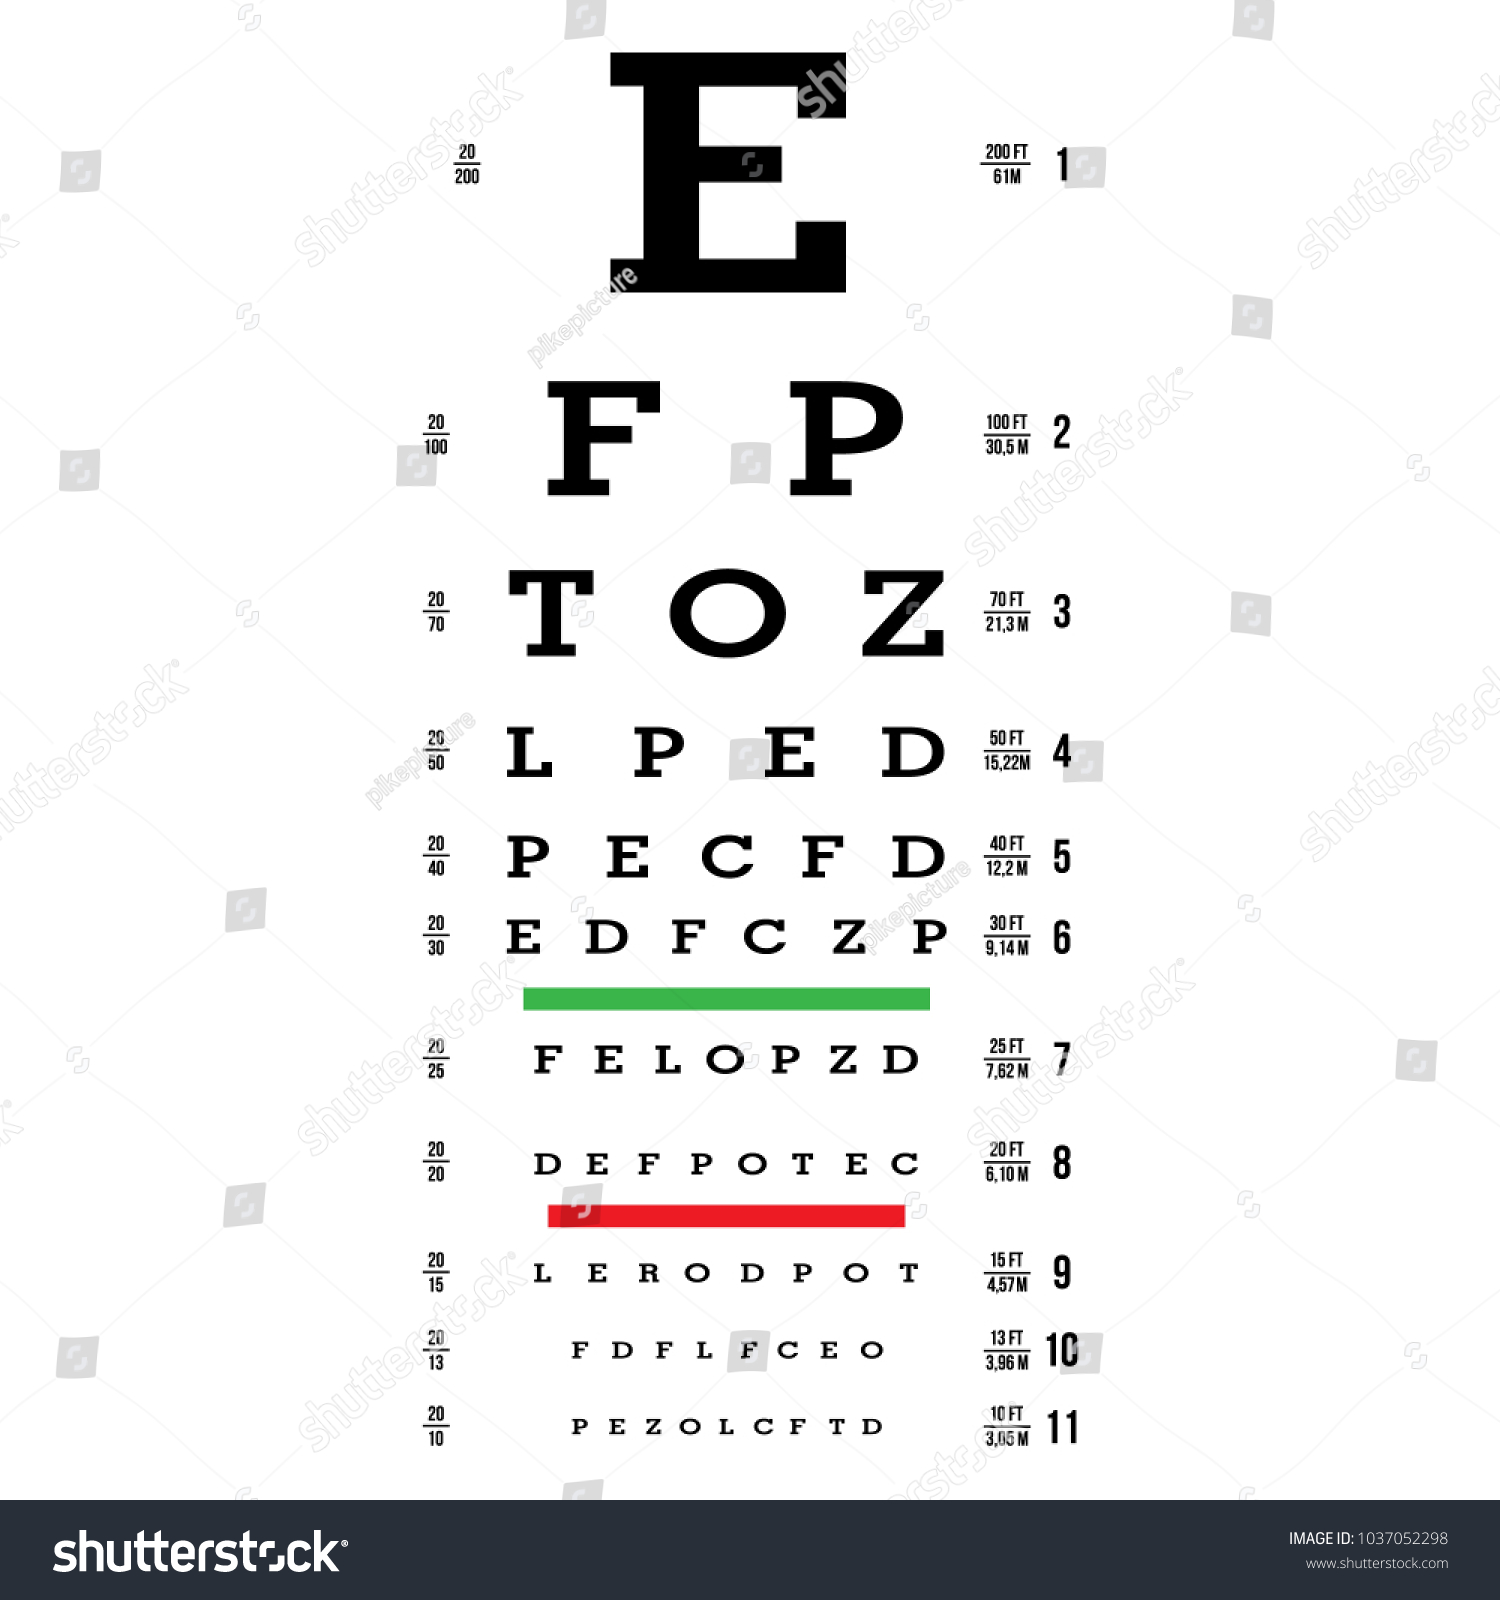 Eye examination charts gallery free any chart examples eye test chart vector letters chart stock vector 1037052298 eye test chart vector letters chart vision nvjuhfo Gallery